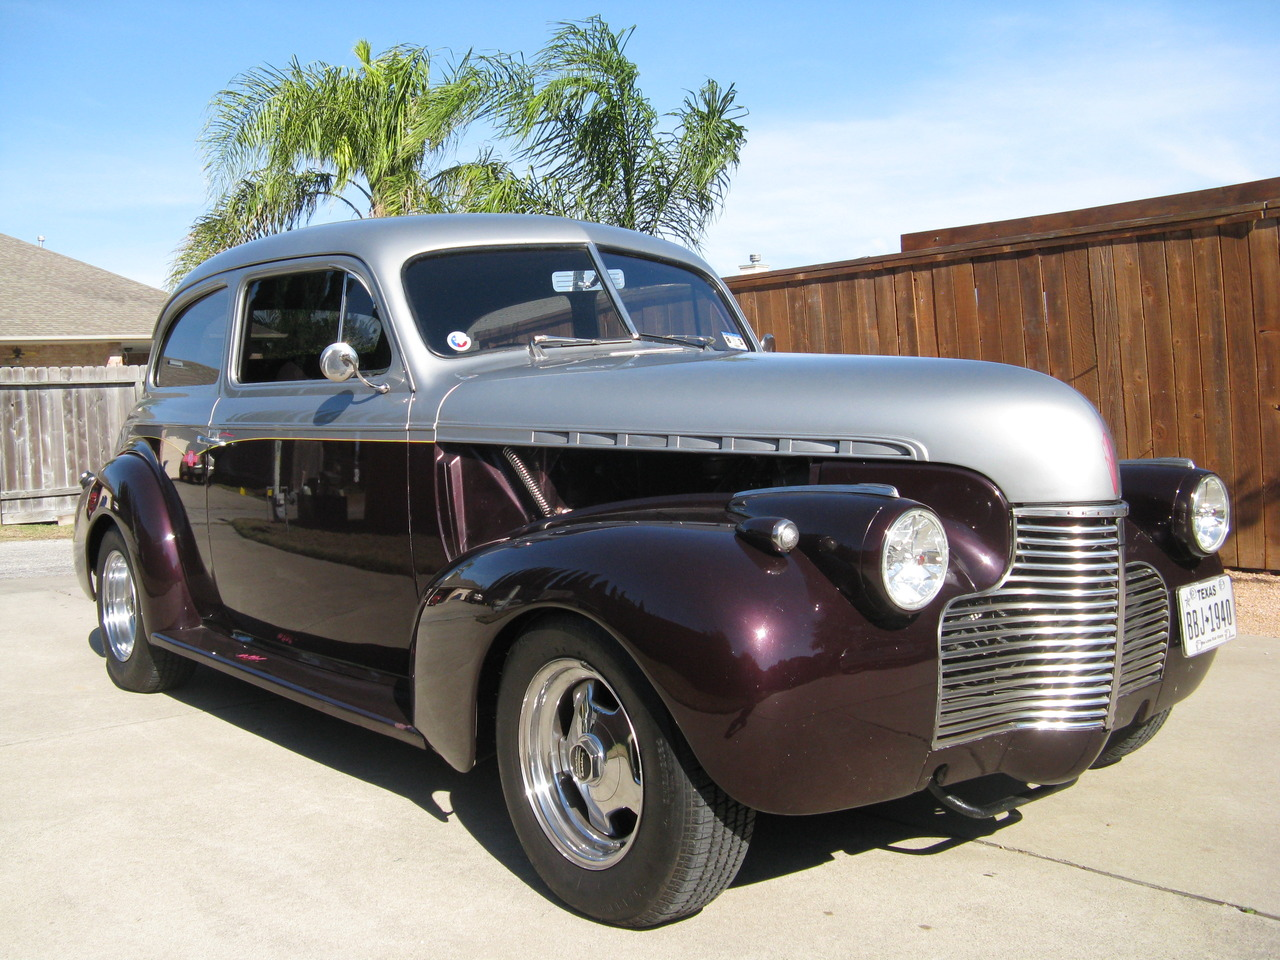 1940 chevrolet sedan photo picture for 1940 chevrolet 2 door sedan